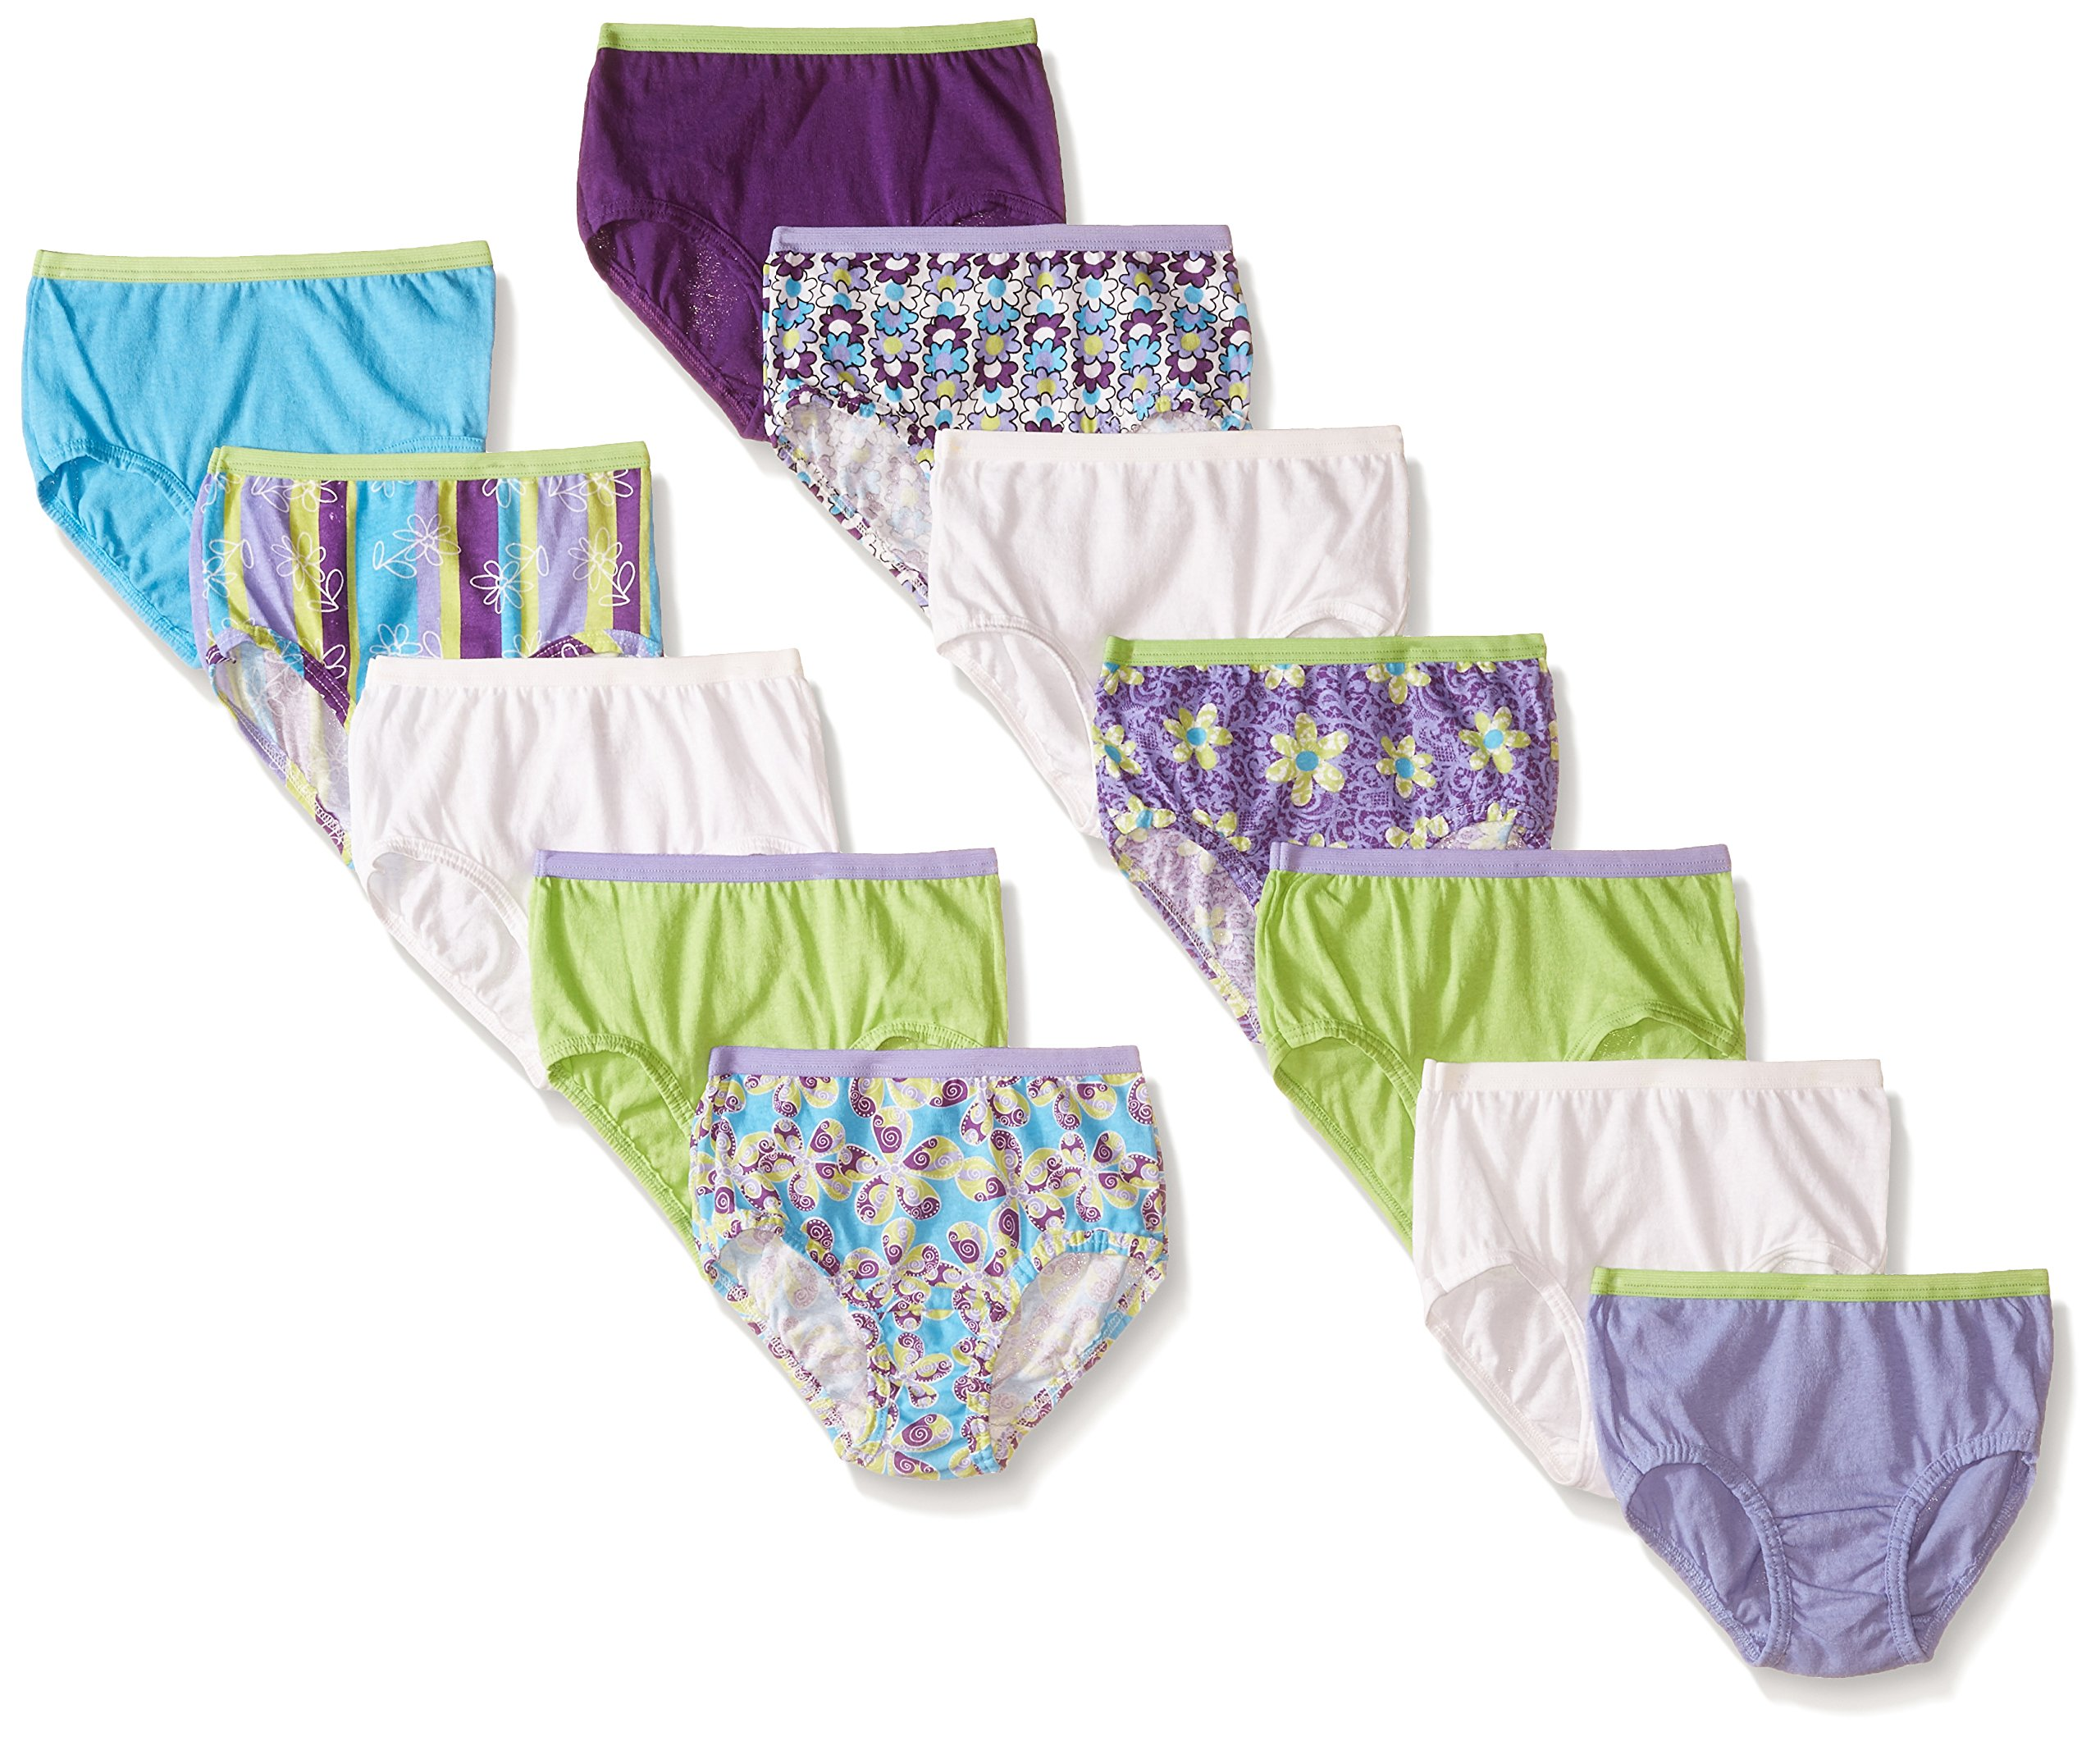 Fruit of the Loom Big Girls' Brief, Assorted, 8 (Pack of 12)